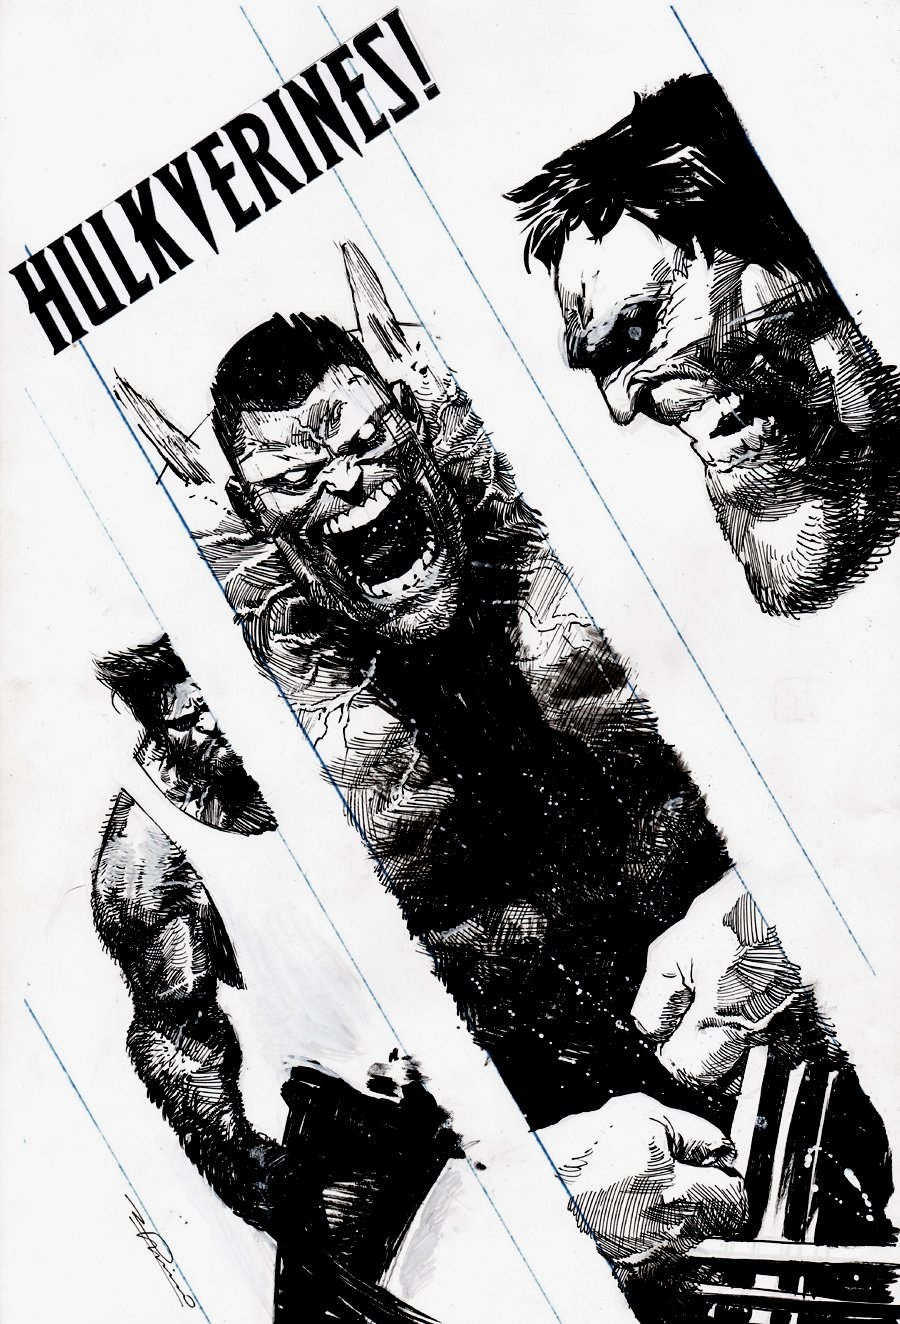 Hulkverines #3 Cover (HULK, WOLVERINE, WEAPON H!) 2019